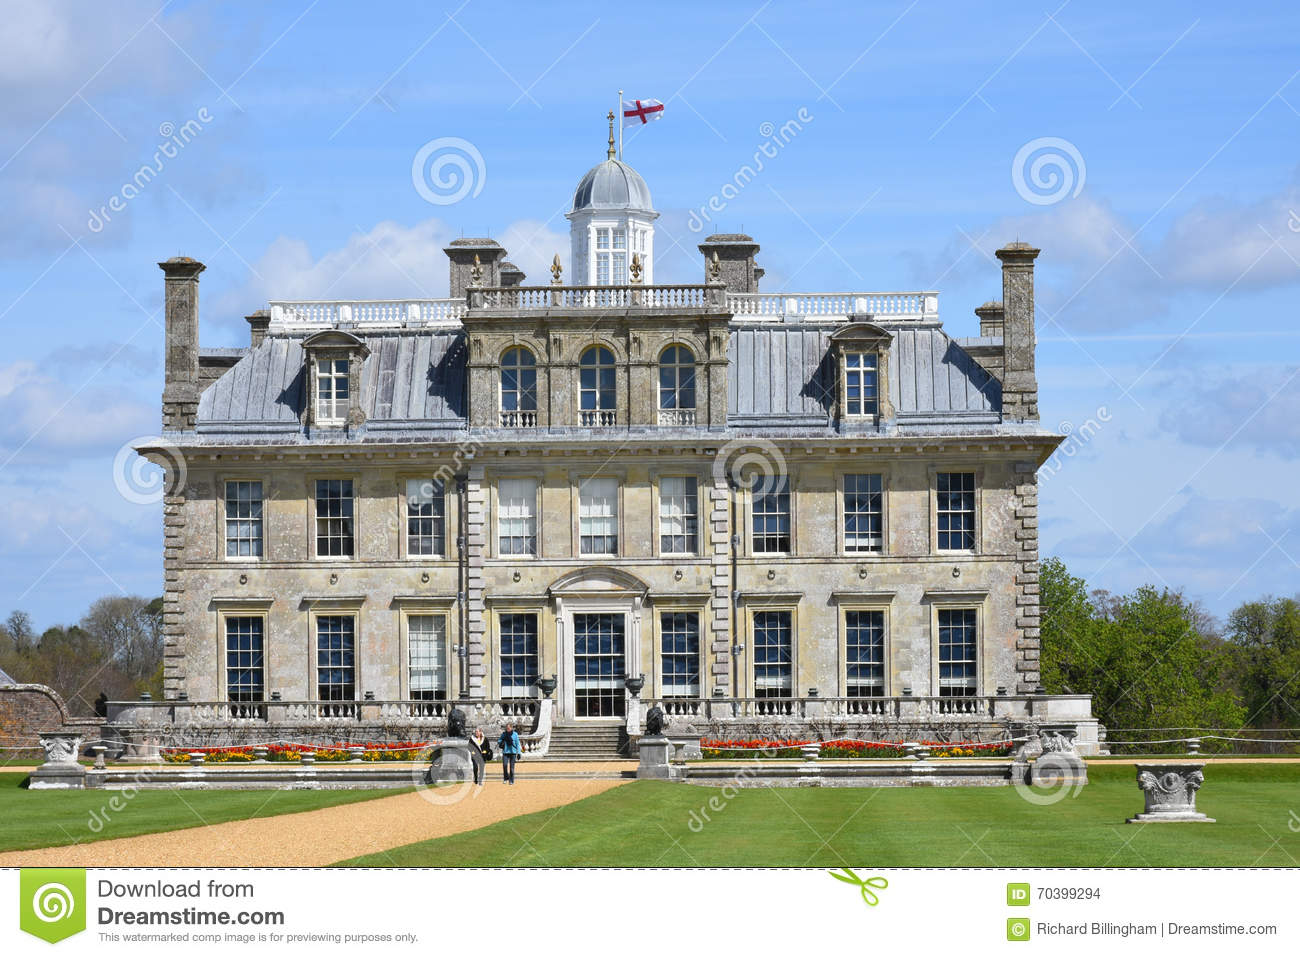 Kingston lacy clipart #11